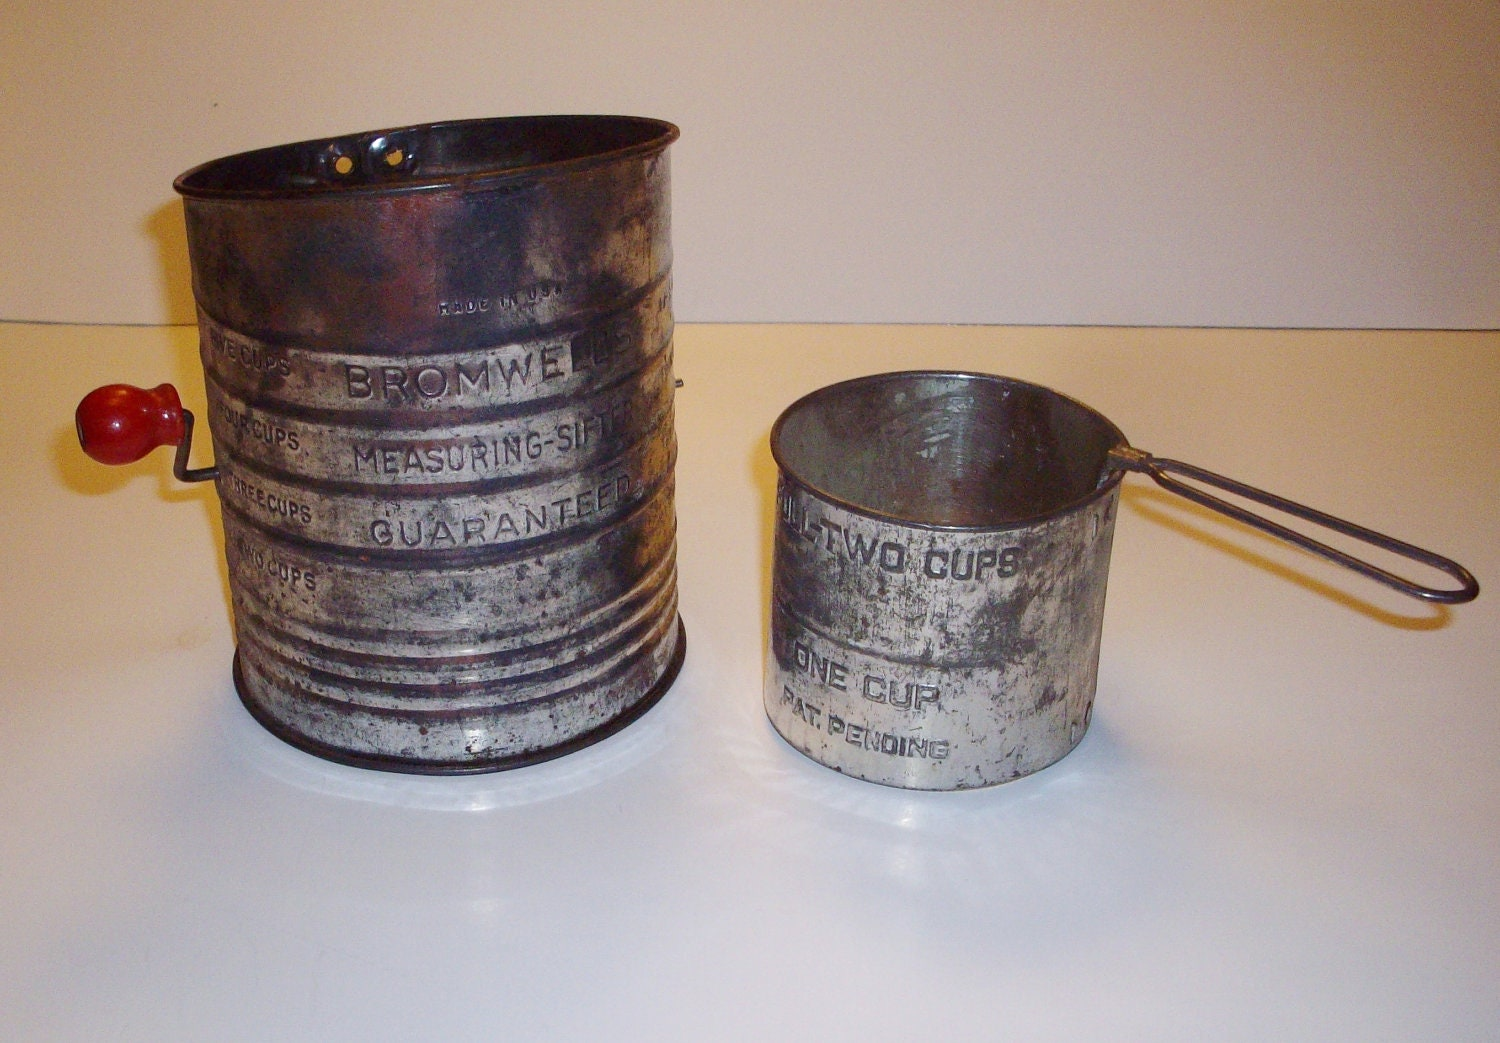 flour sifter - photo #33